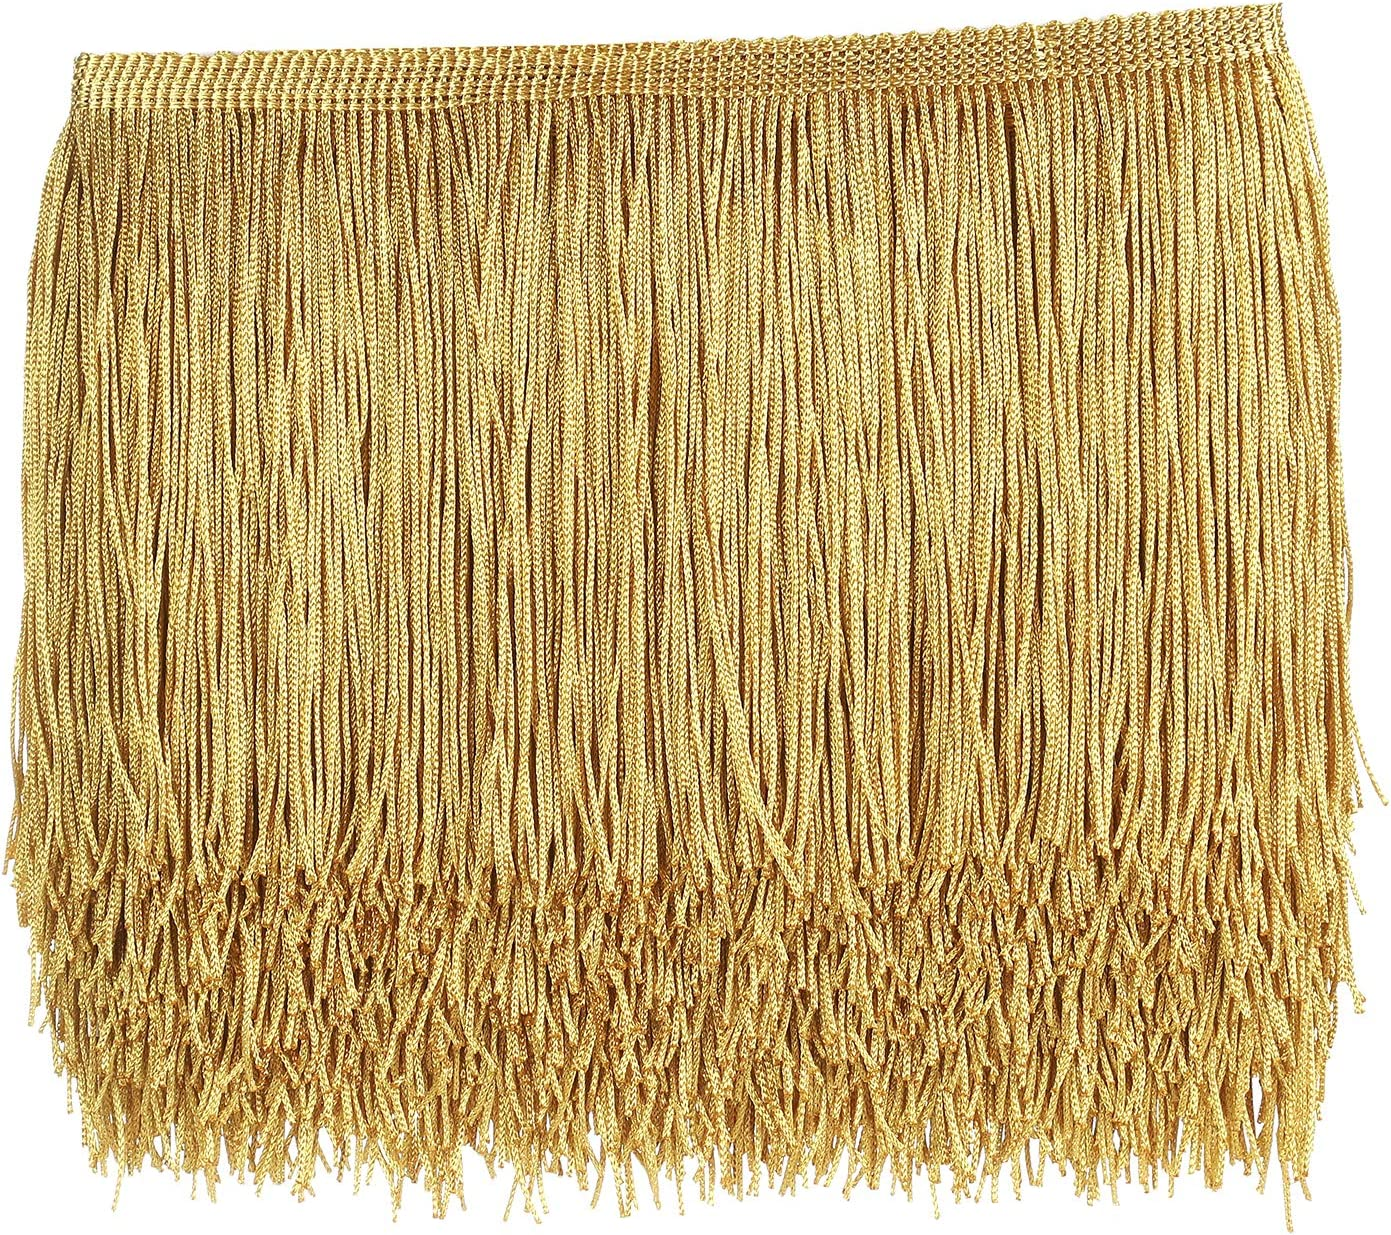 10 Meters 7.8\u201c Long Lace Trim Tassel Fringe Trimming For Diy Latin Dress Stage Clothes Accessories